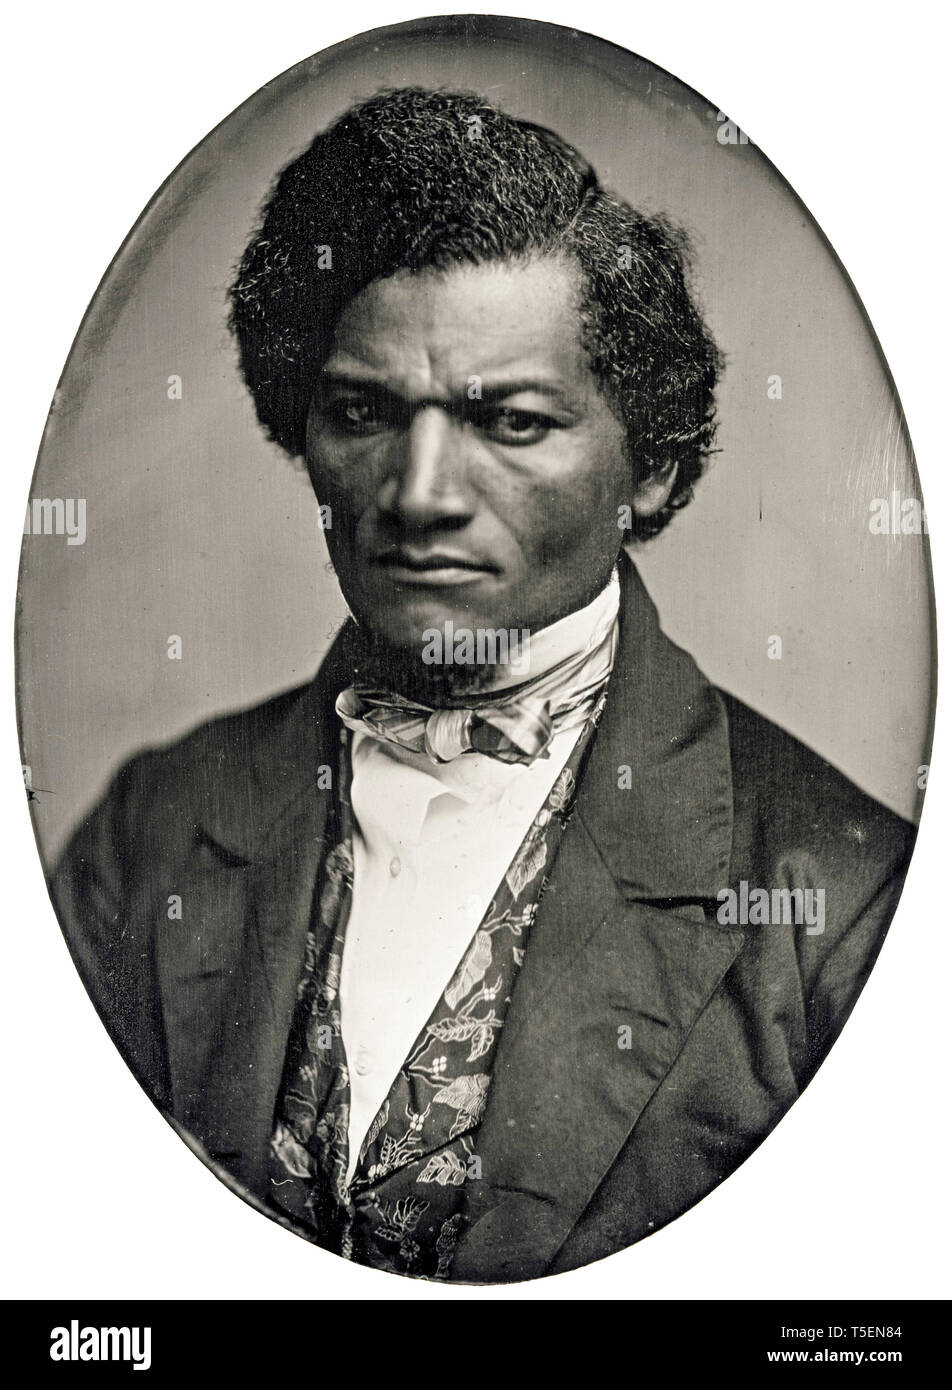 Frederick Douglass (1818-1895), portrait by Samuel J. Miller, daguerreotype,  c. 1847 Stock Photo